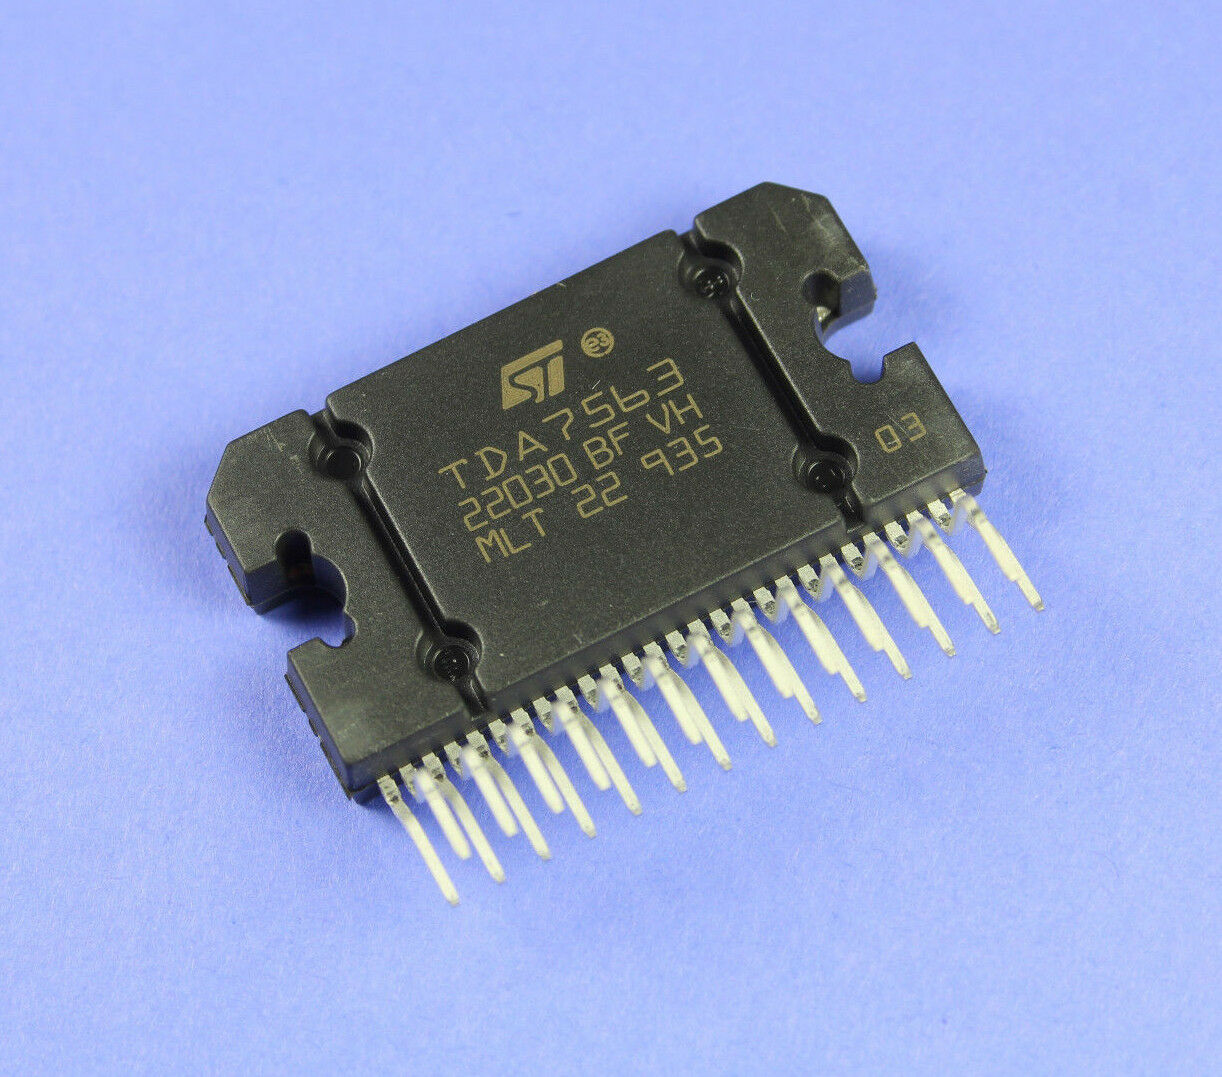 Tda7563 Stmicroelectronics Audio Integrated Circuit Quad Power 60w 2n3055 Amplifier Norton Secured Powered By Verisign